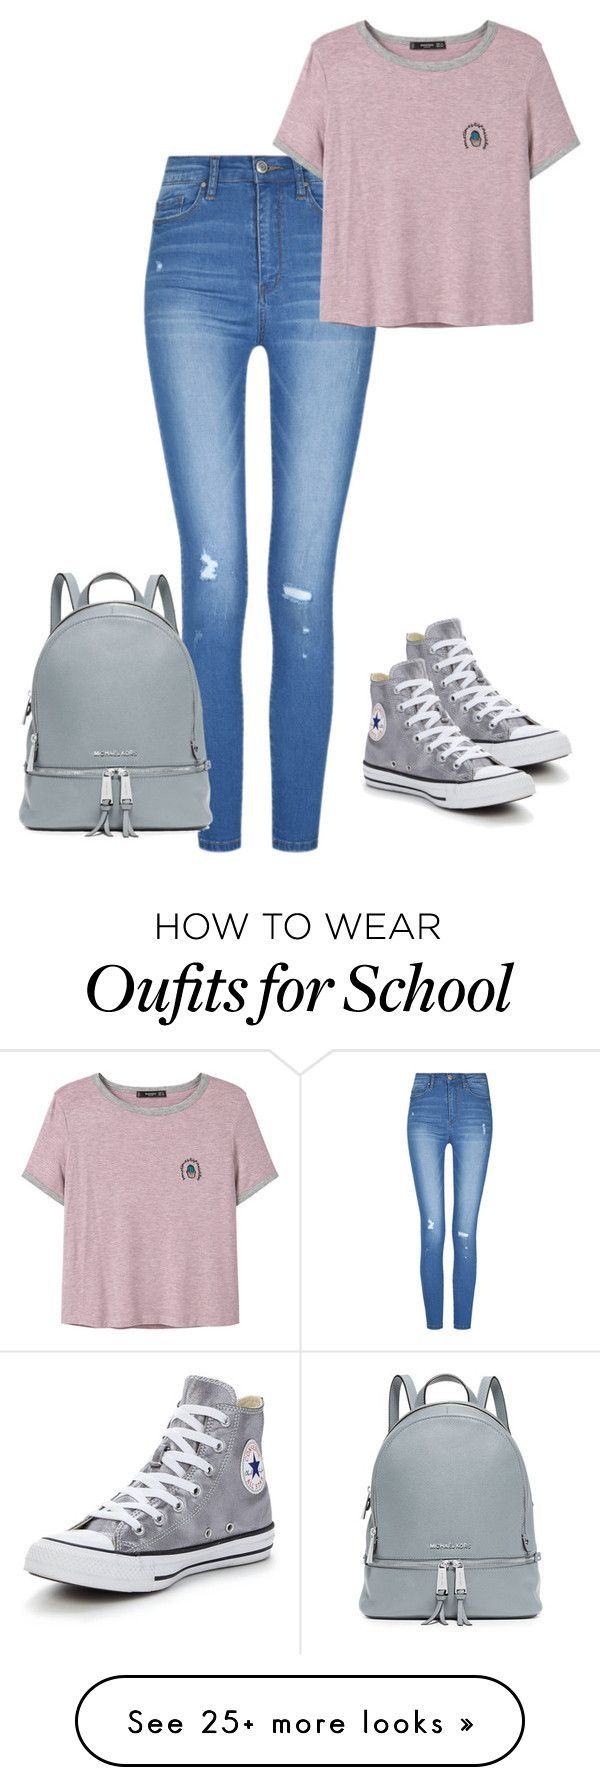 Back to school by pocok01 on Polyvore featuring MANGO, Converse and MICHAEL Michael Kors #schooloutfit